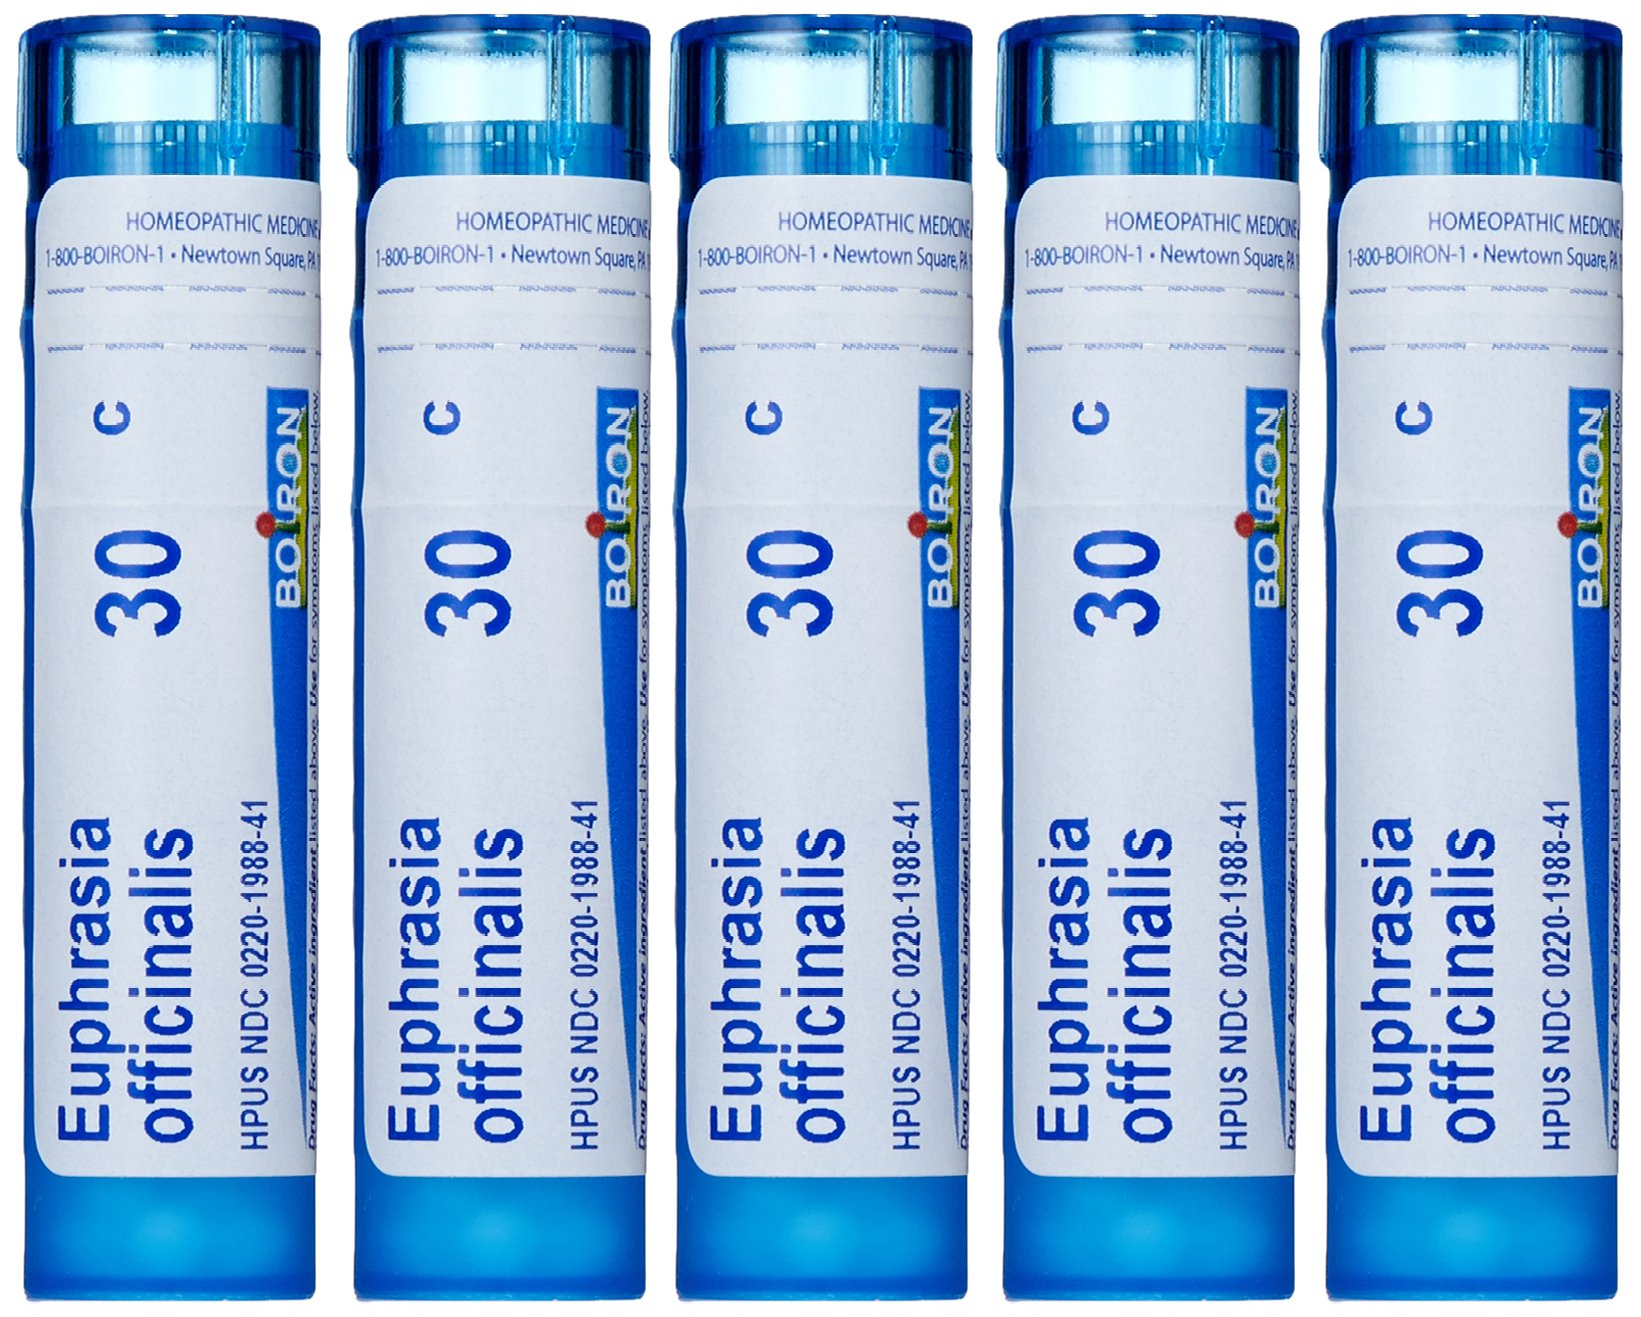 Boiron Euphrasia Officinalis 30C (Pack of 5), Homeopathic Medicine for Eye Discharge